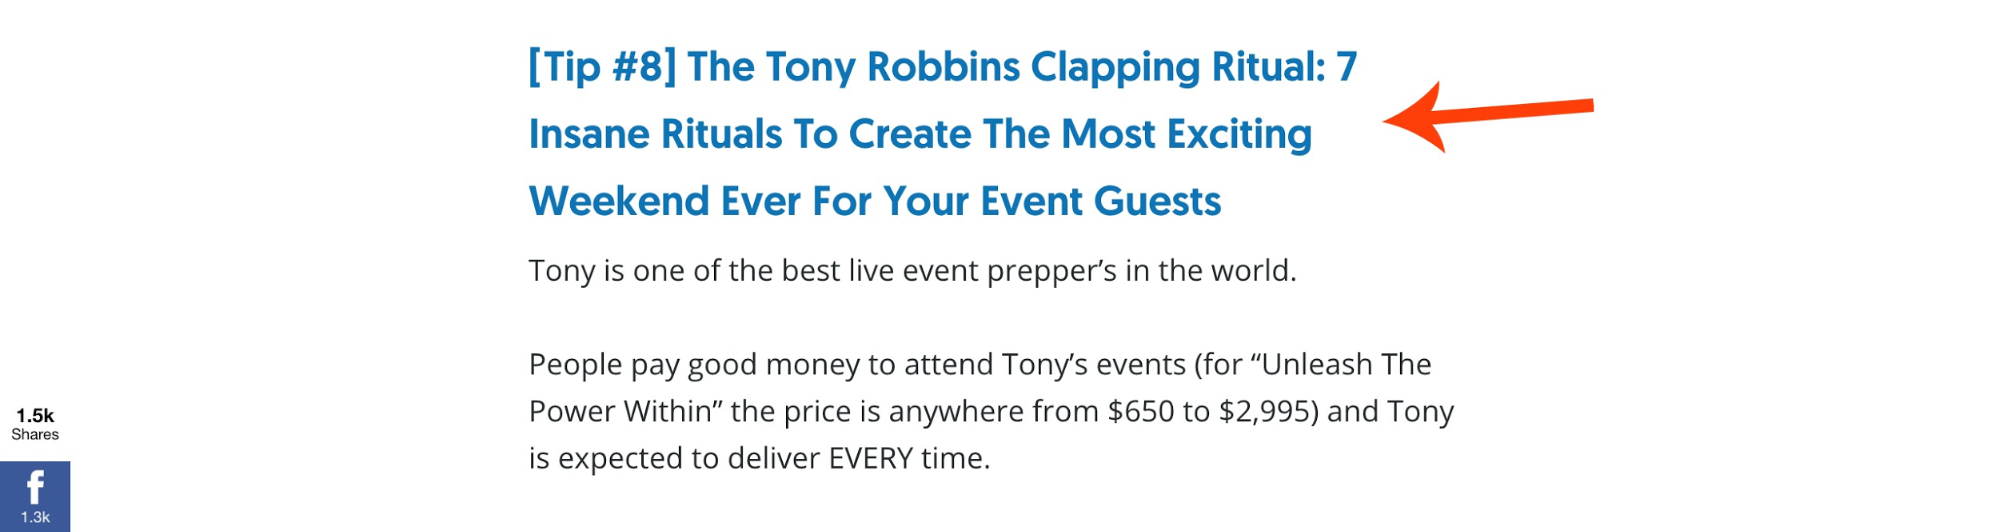 Screenshot of the title of a content piece about Tony Robbins